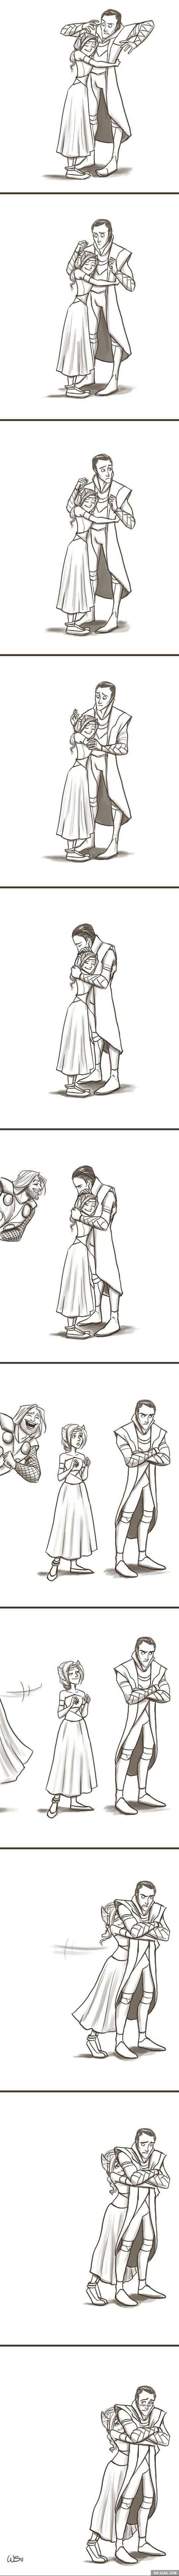 This is Sigyn. Loki's wife.... O.O ..... GODDAMMIT! THEY LOOK CUTE TOGETHER.... T.T